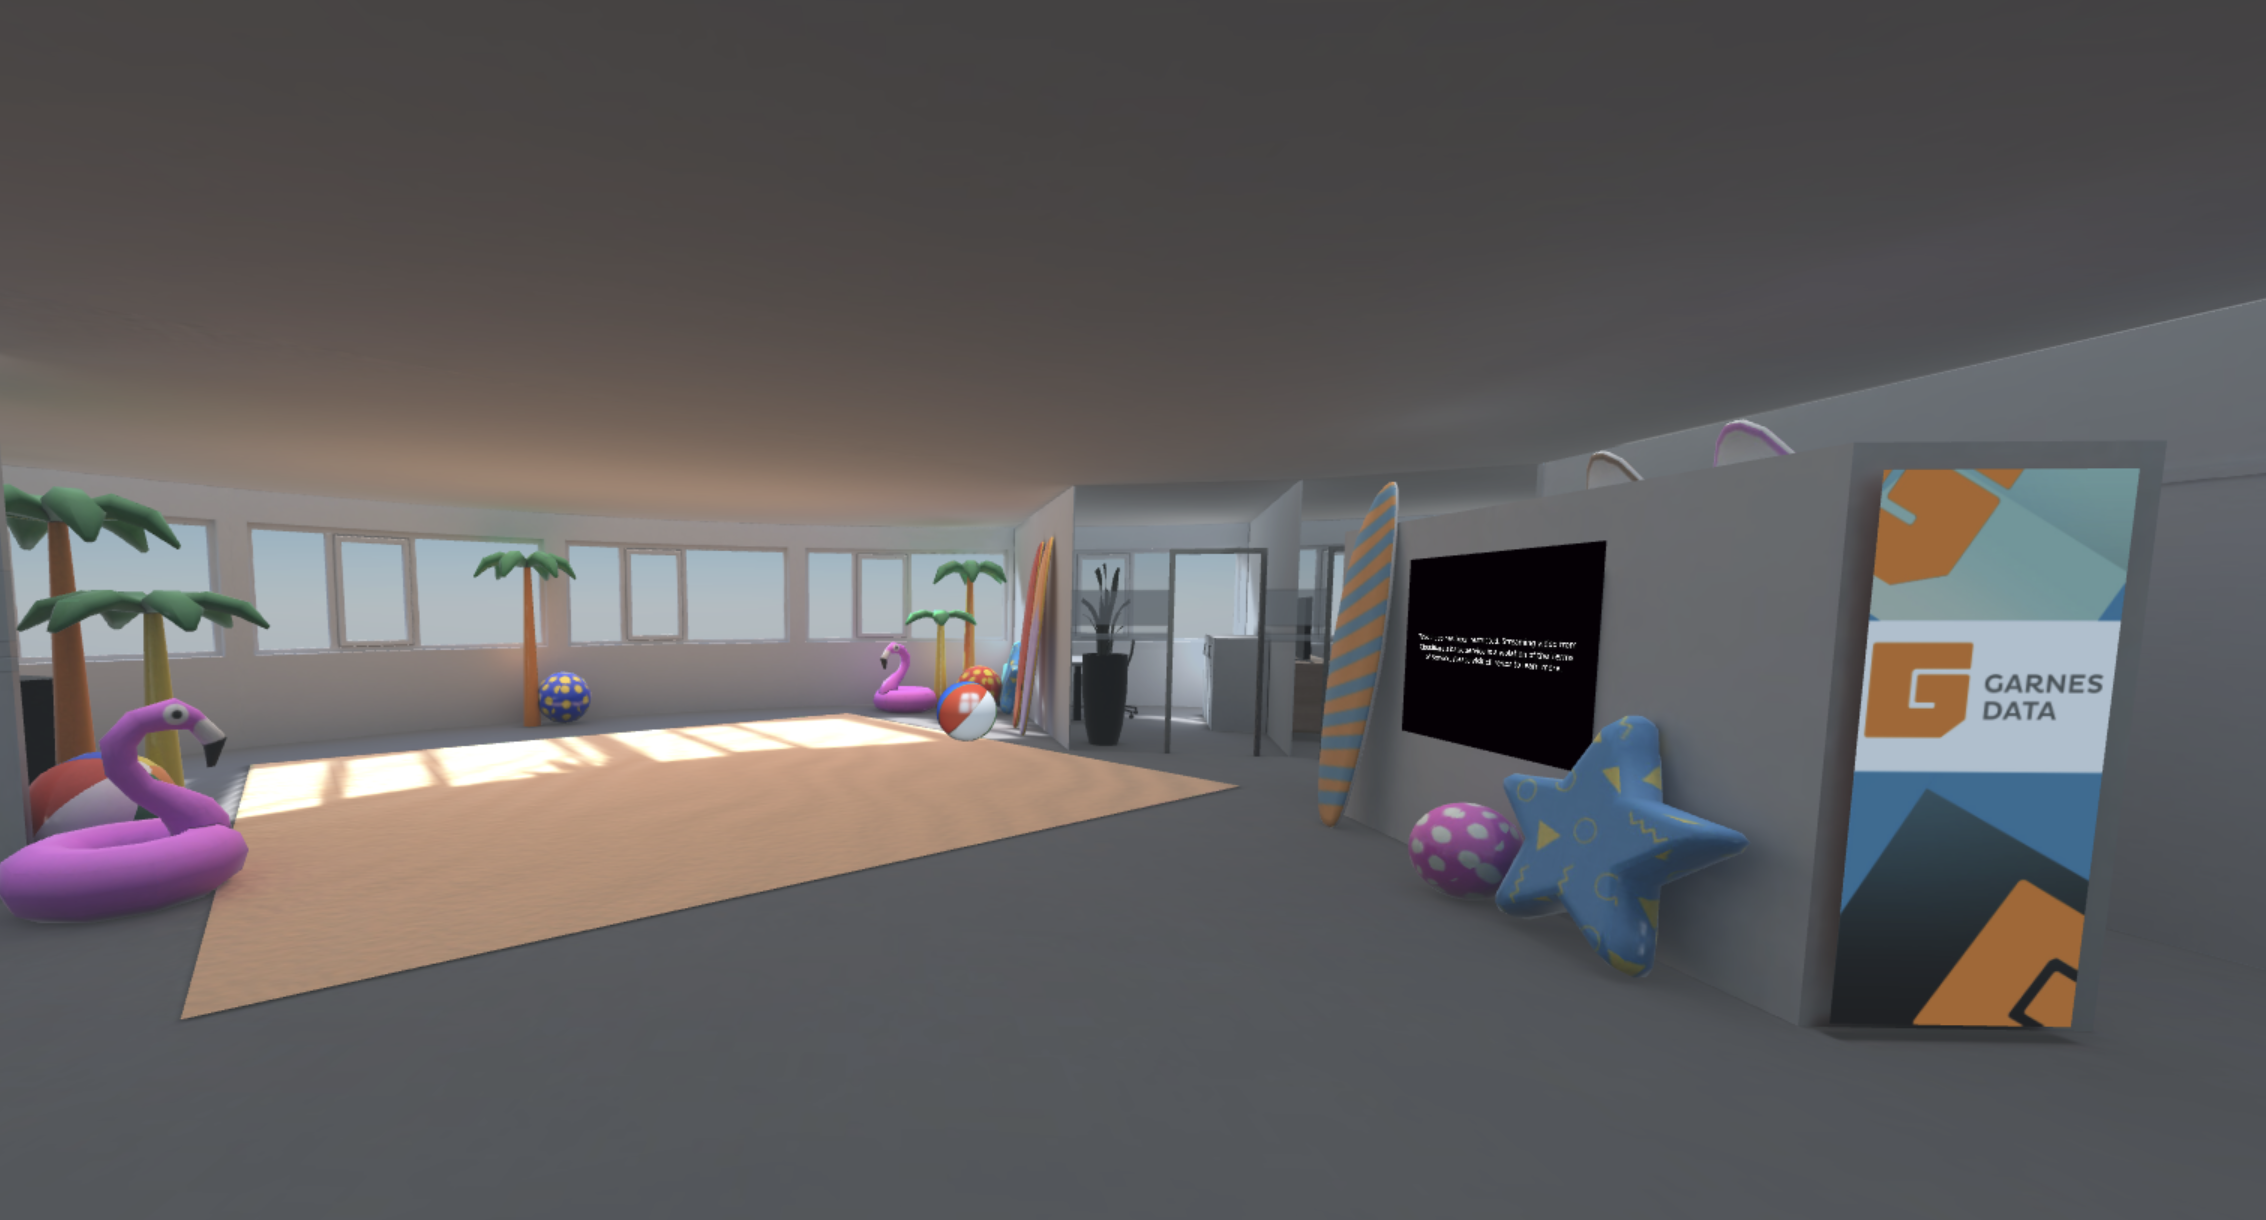 A 3D scene with a corporate office design.